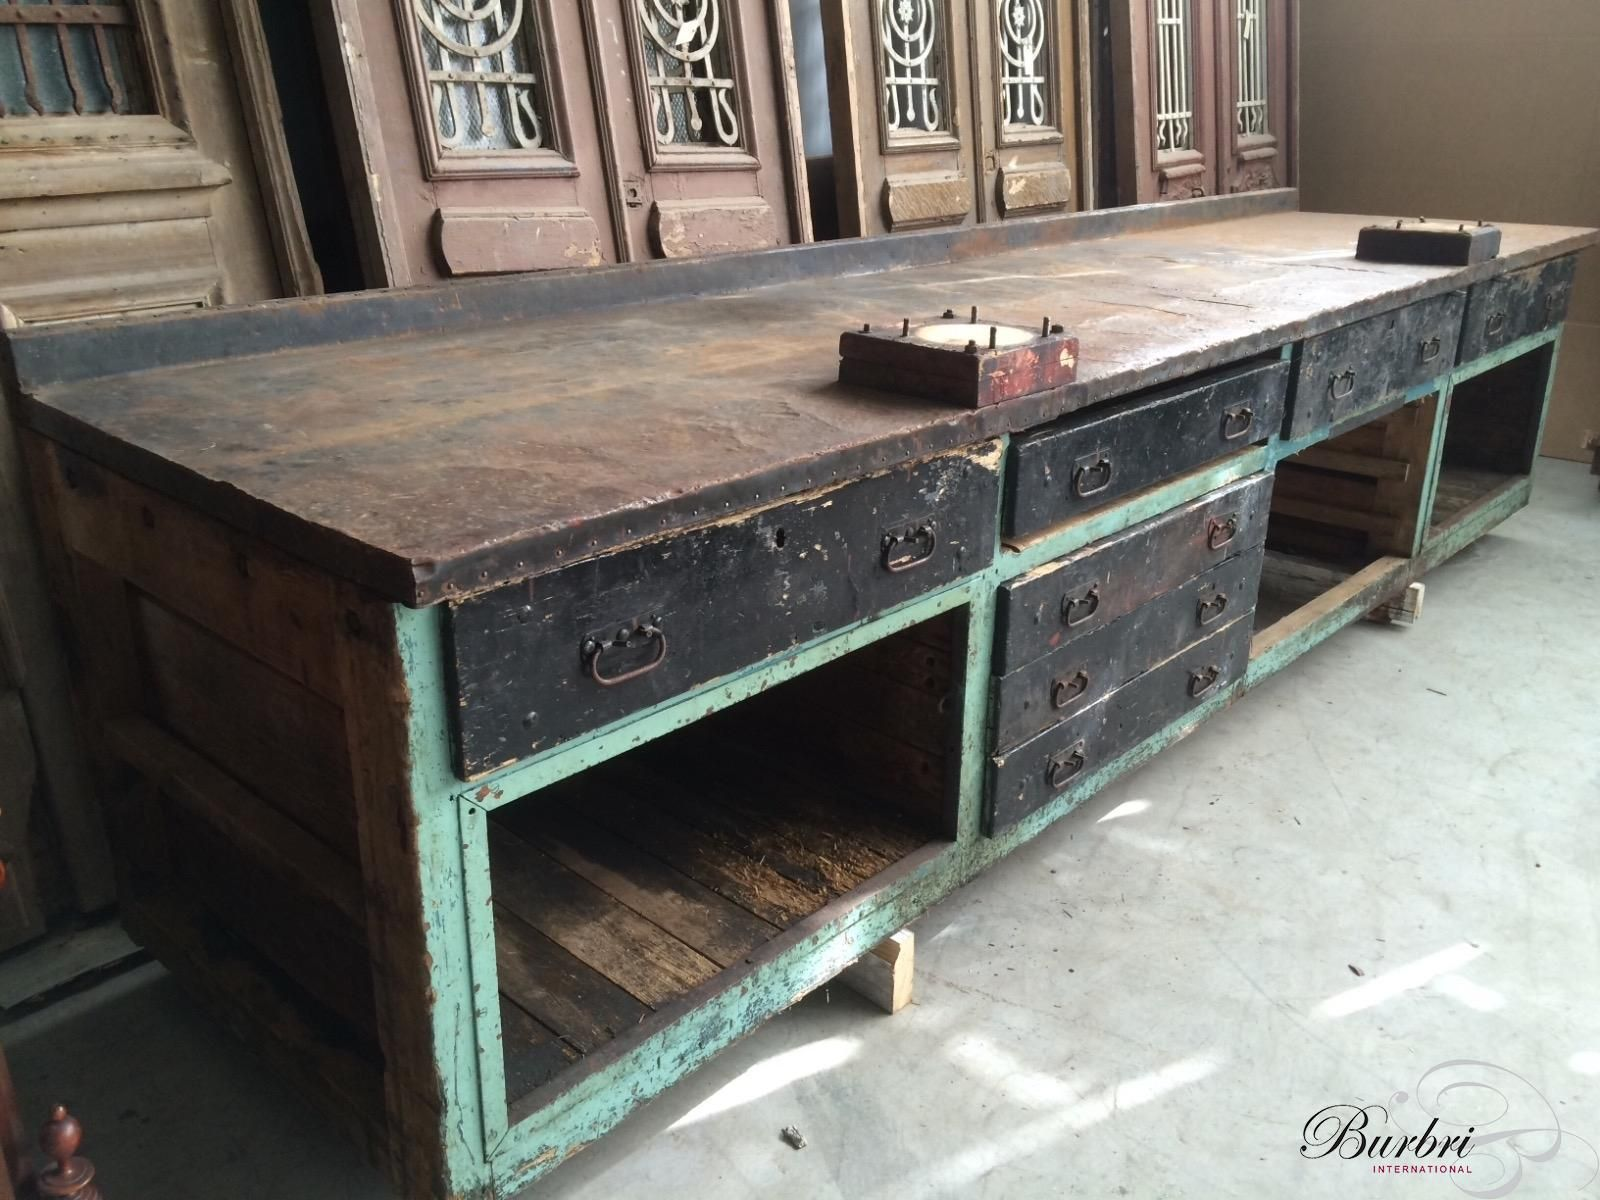 Industrial antique working bench old kitchen cabinet industriële